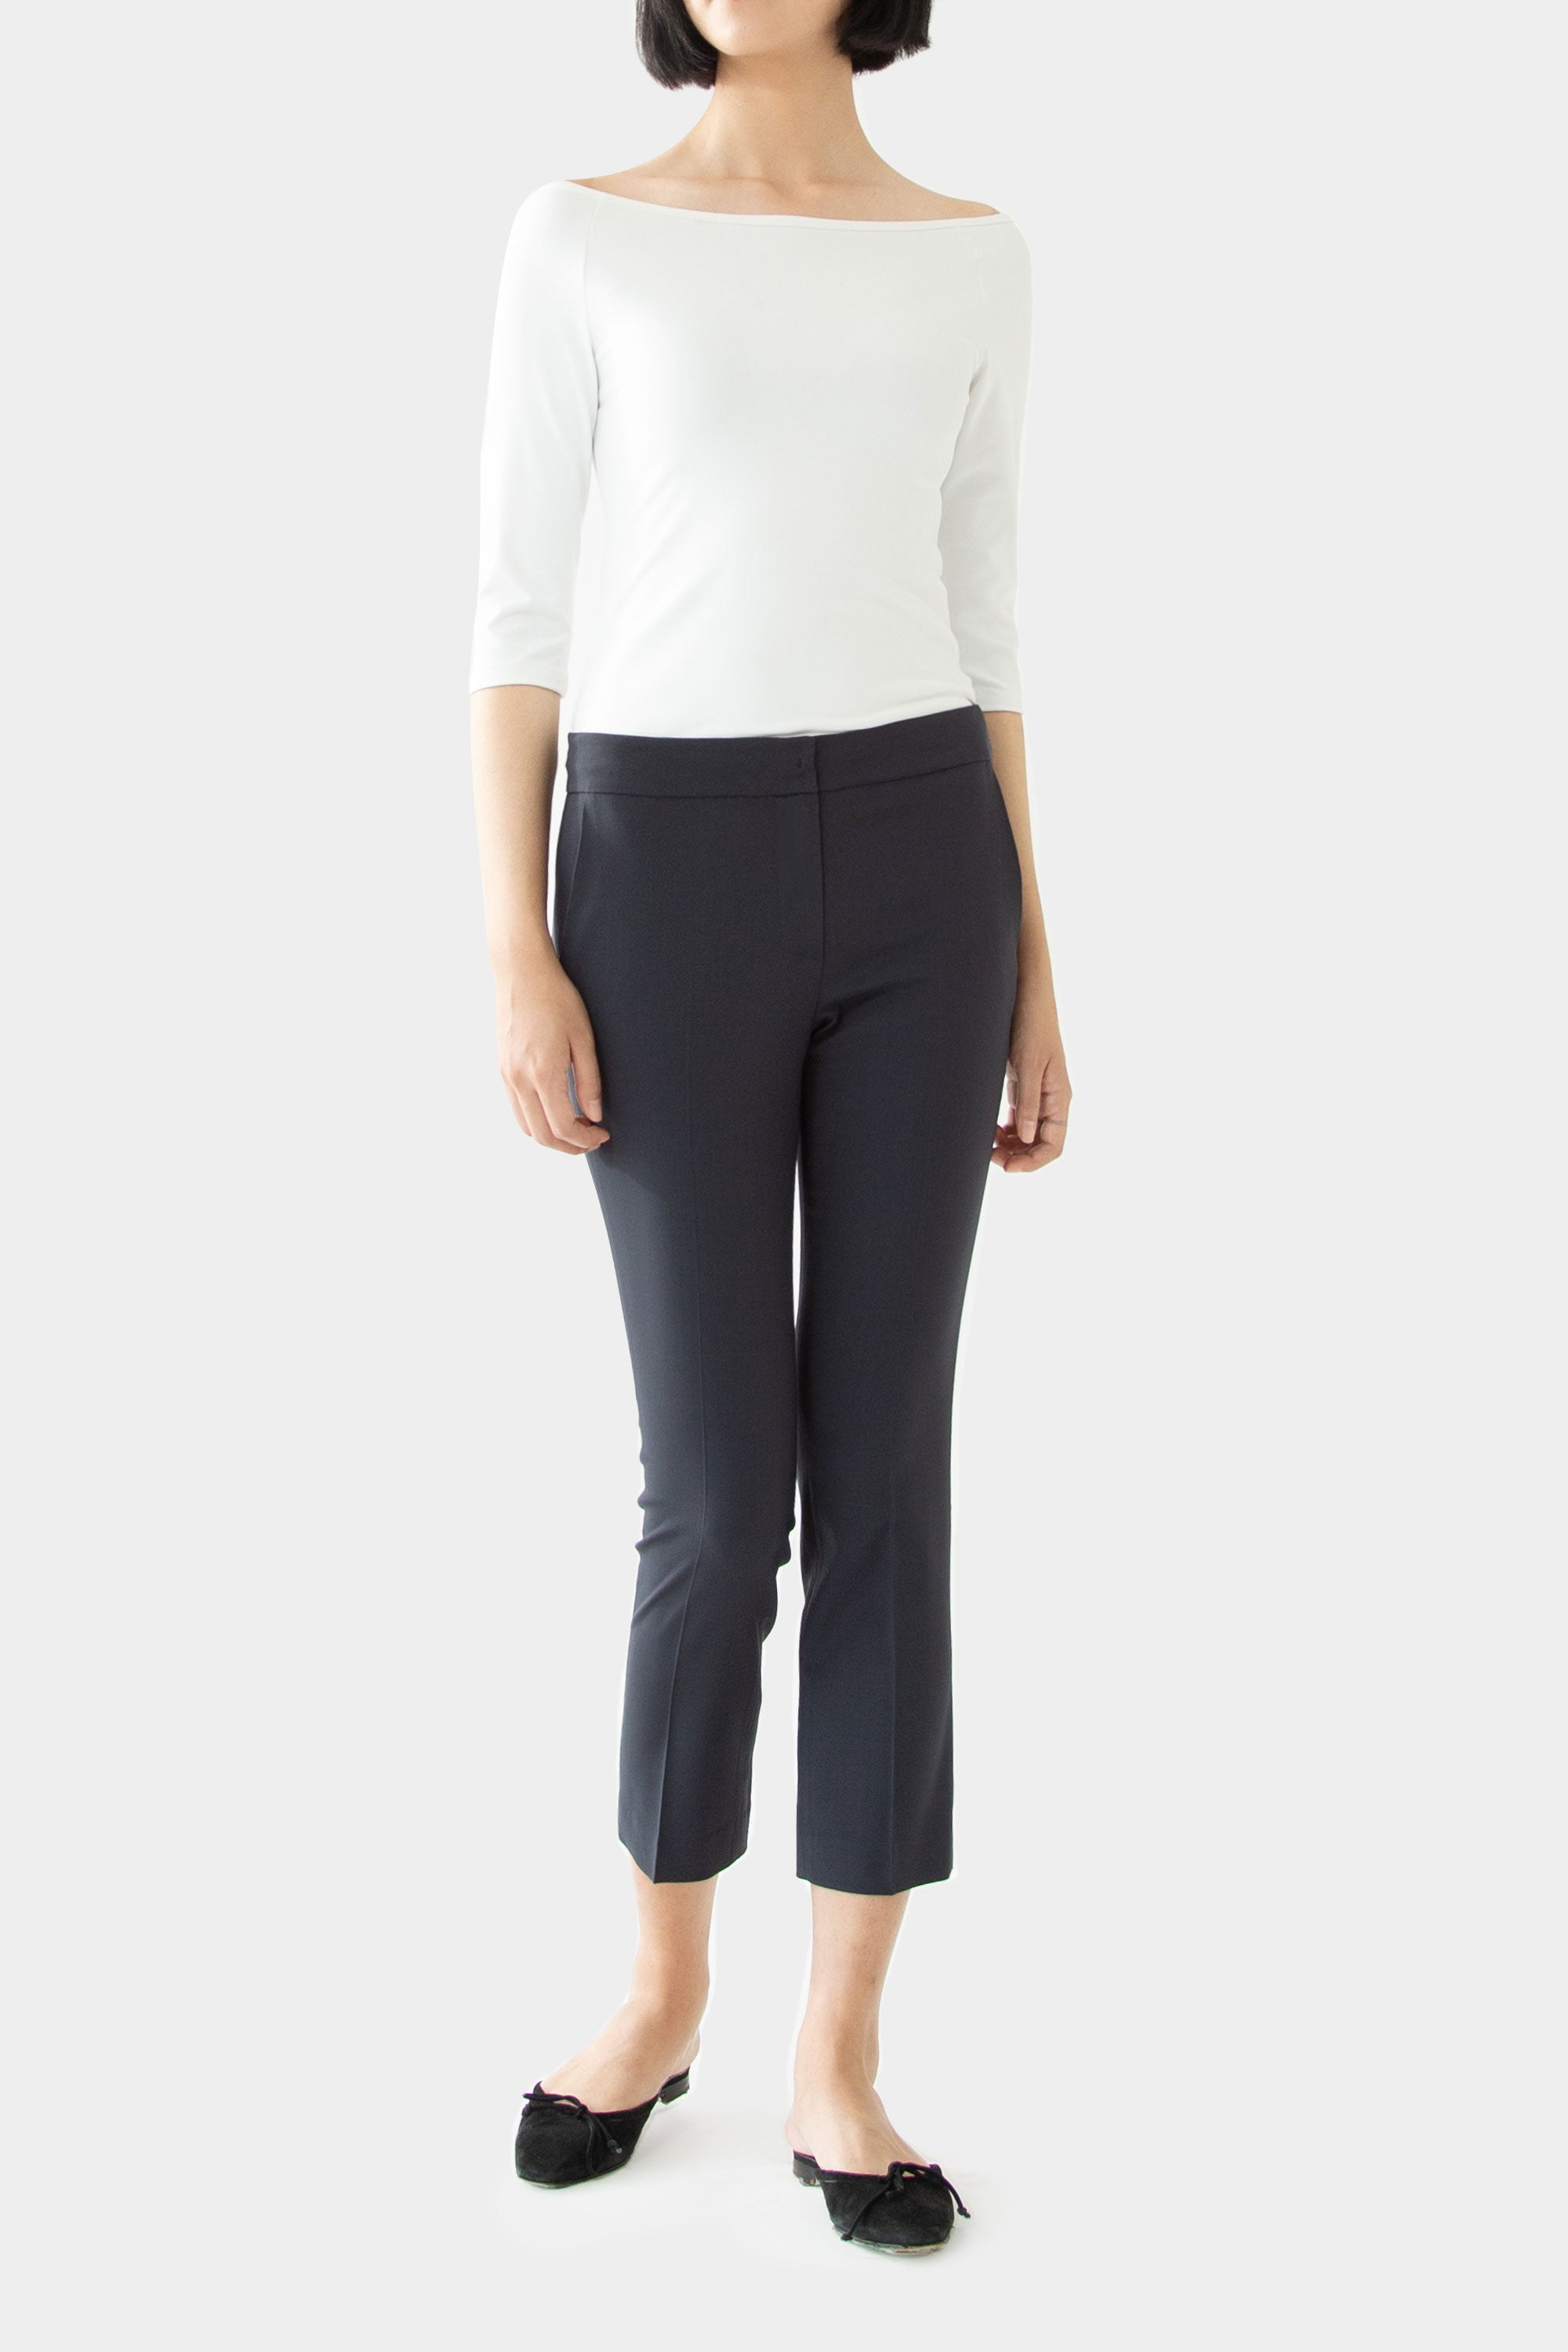 CHARCOAL JENNA TAILORED PANTS